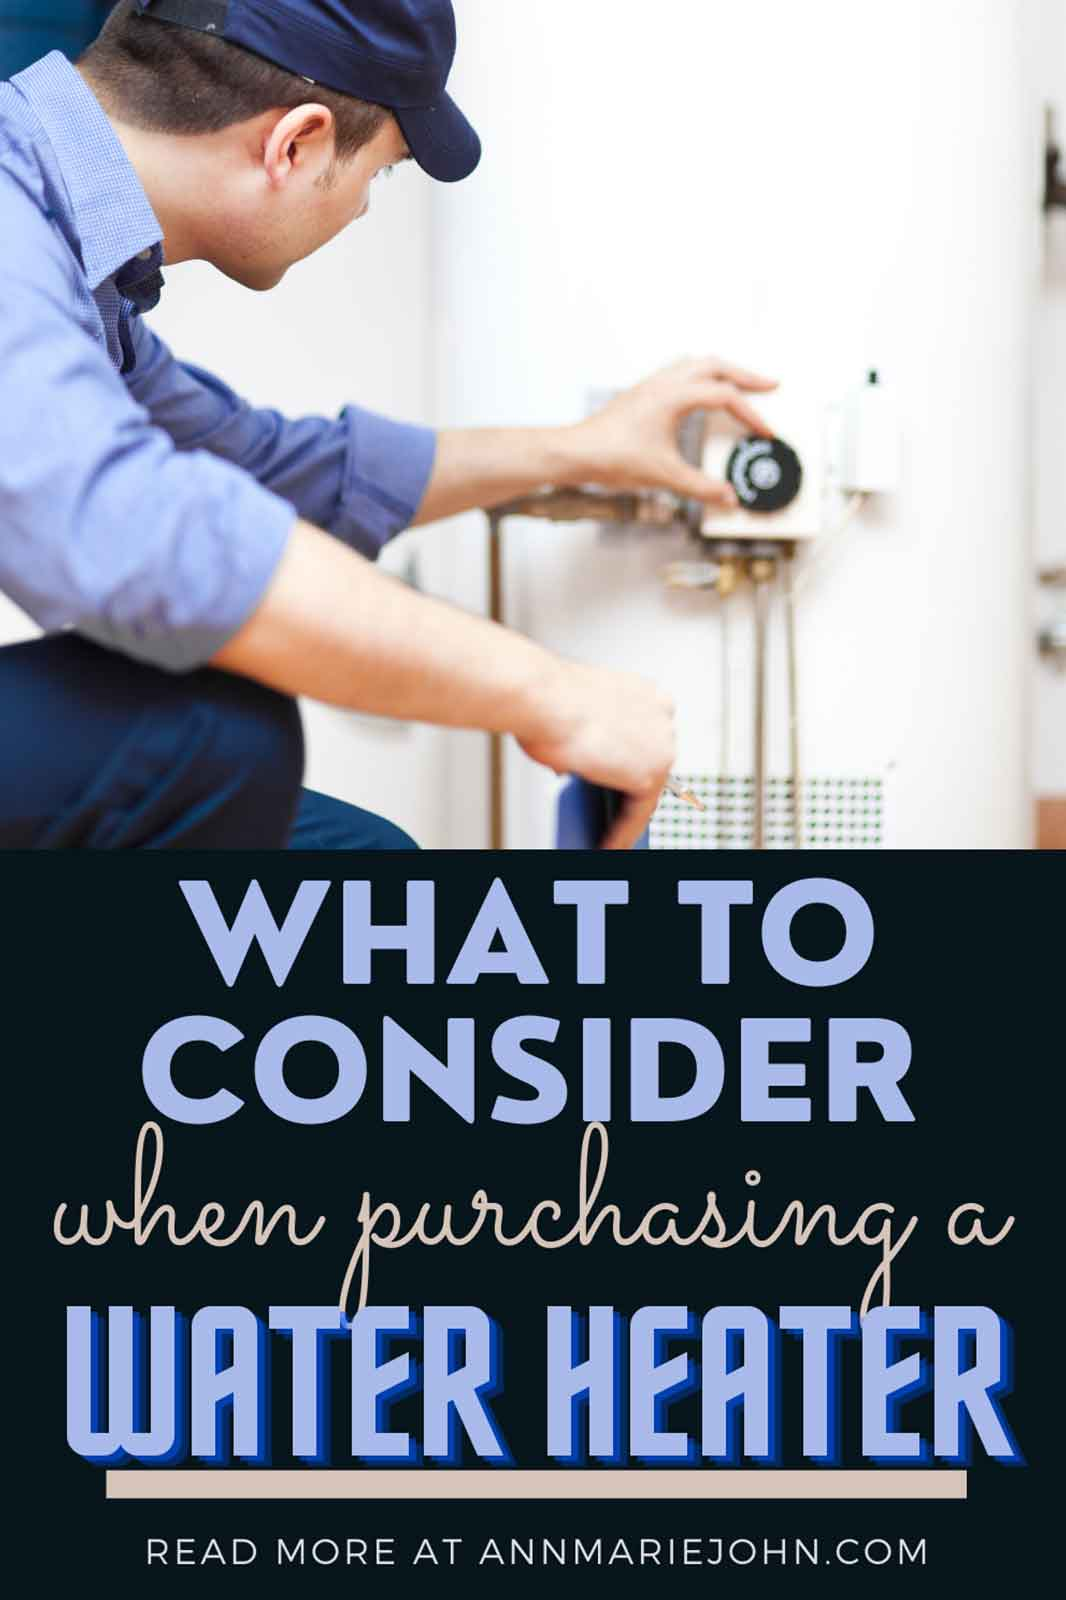 What to consider when purchasing a water heater